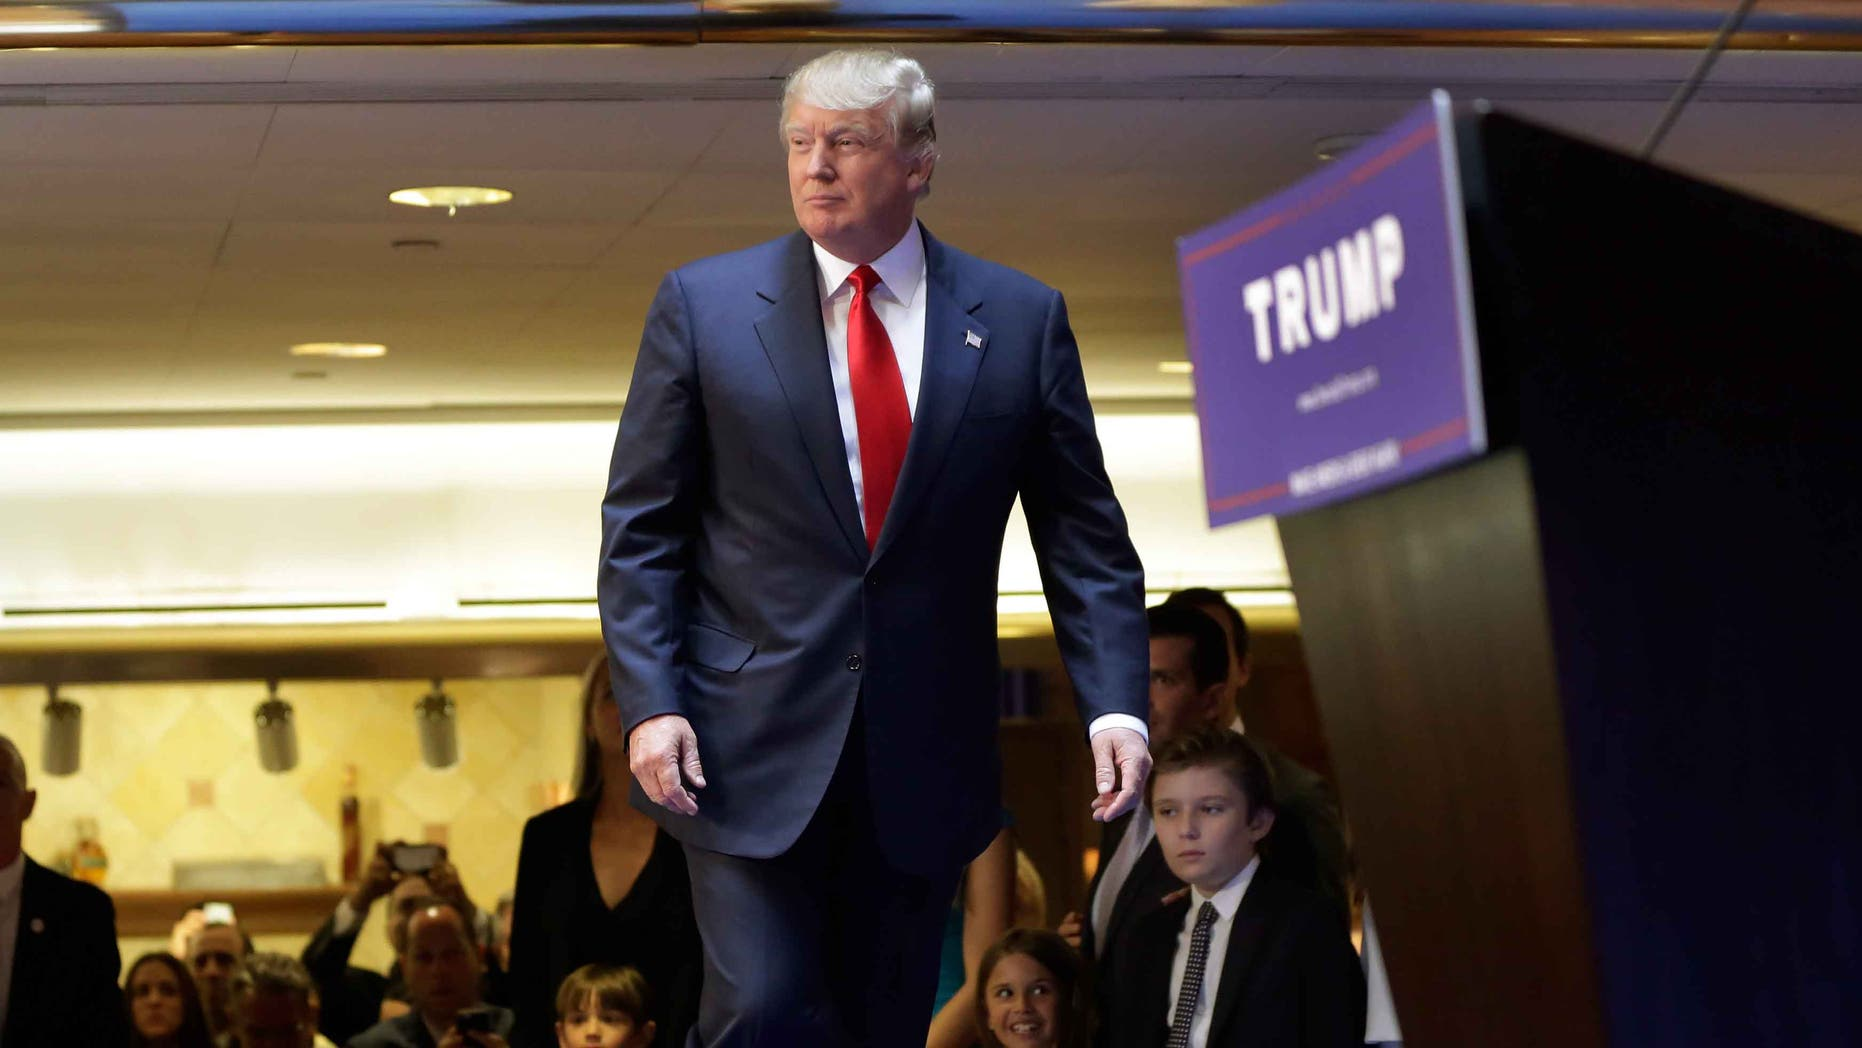 Developer Donald Trump takes the stage to announce that he will seek the Republican nomination for president, Tuesday, June 16, 2015, in the lobby of Trump Tower in New York,  Tuesday, June 16, 2015. (AP Photo/Richard Drew)